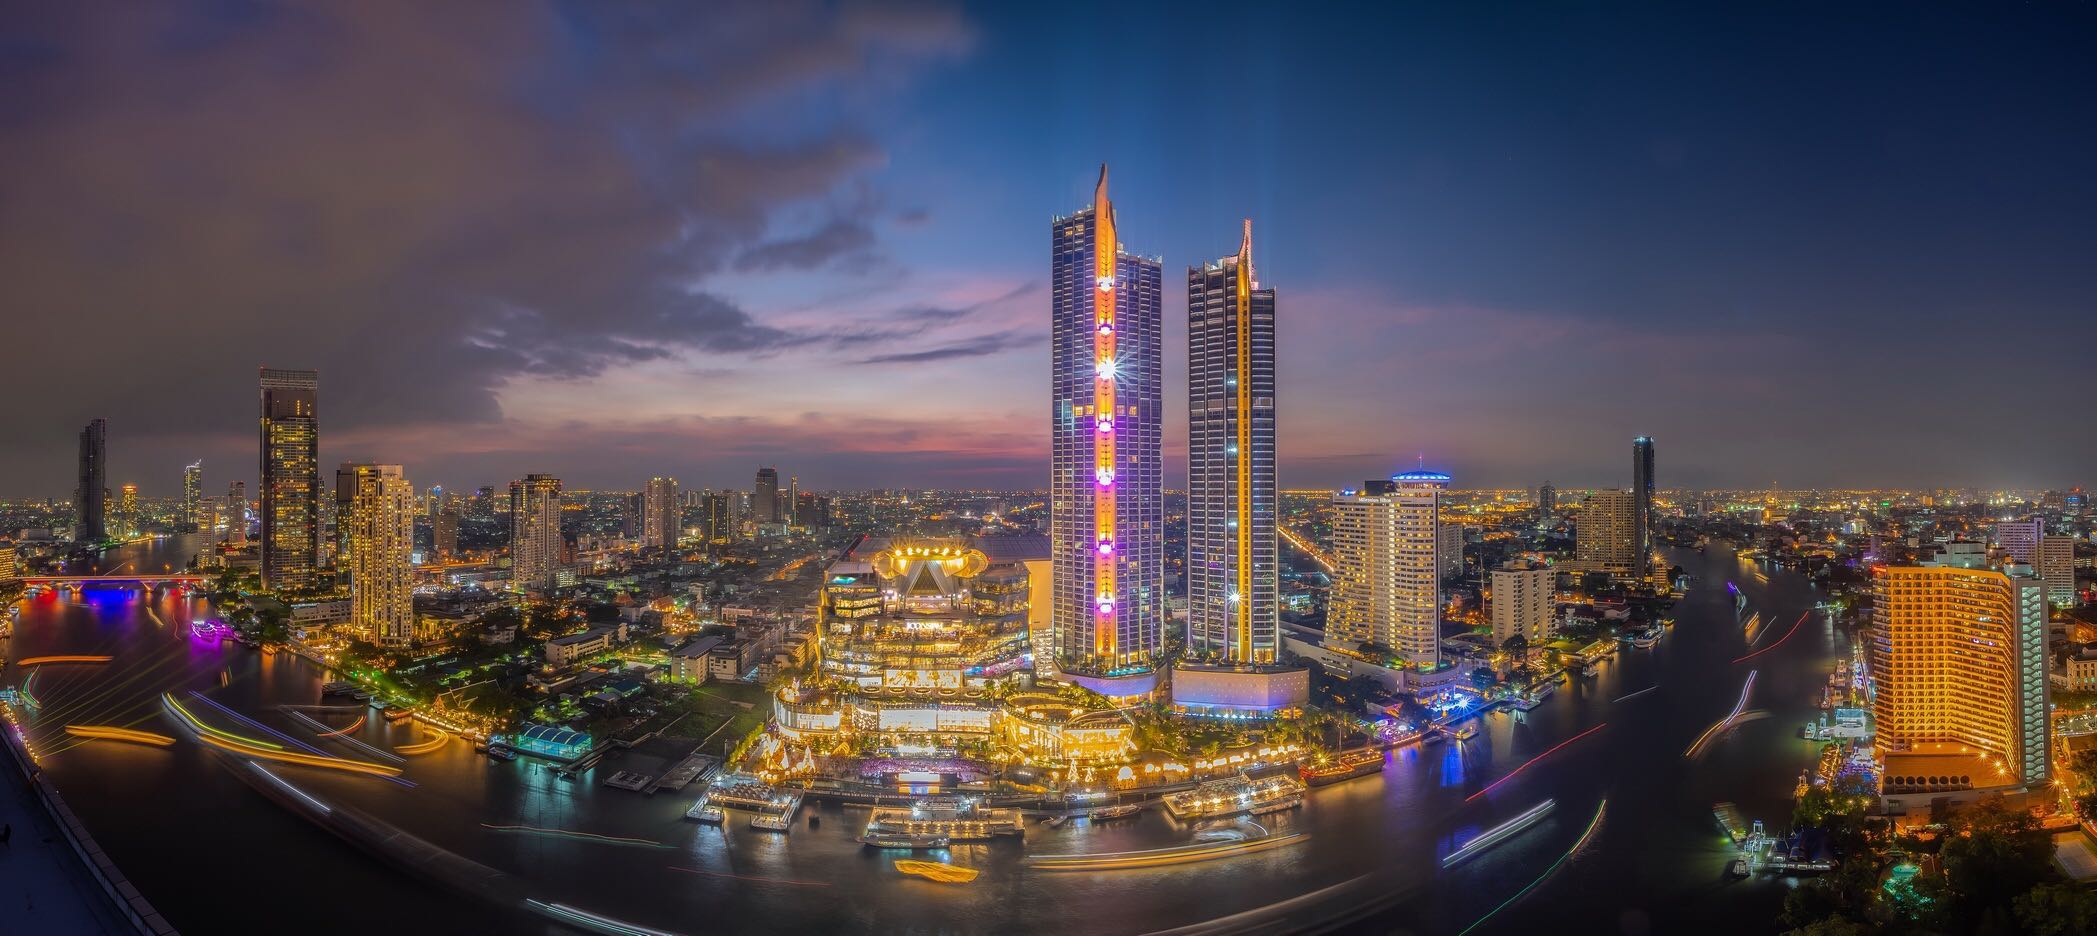 A great phenomenon awaits at ICONSIAM Chao Phraya River of Glory this month